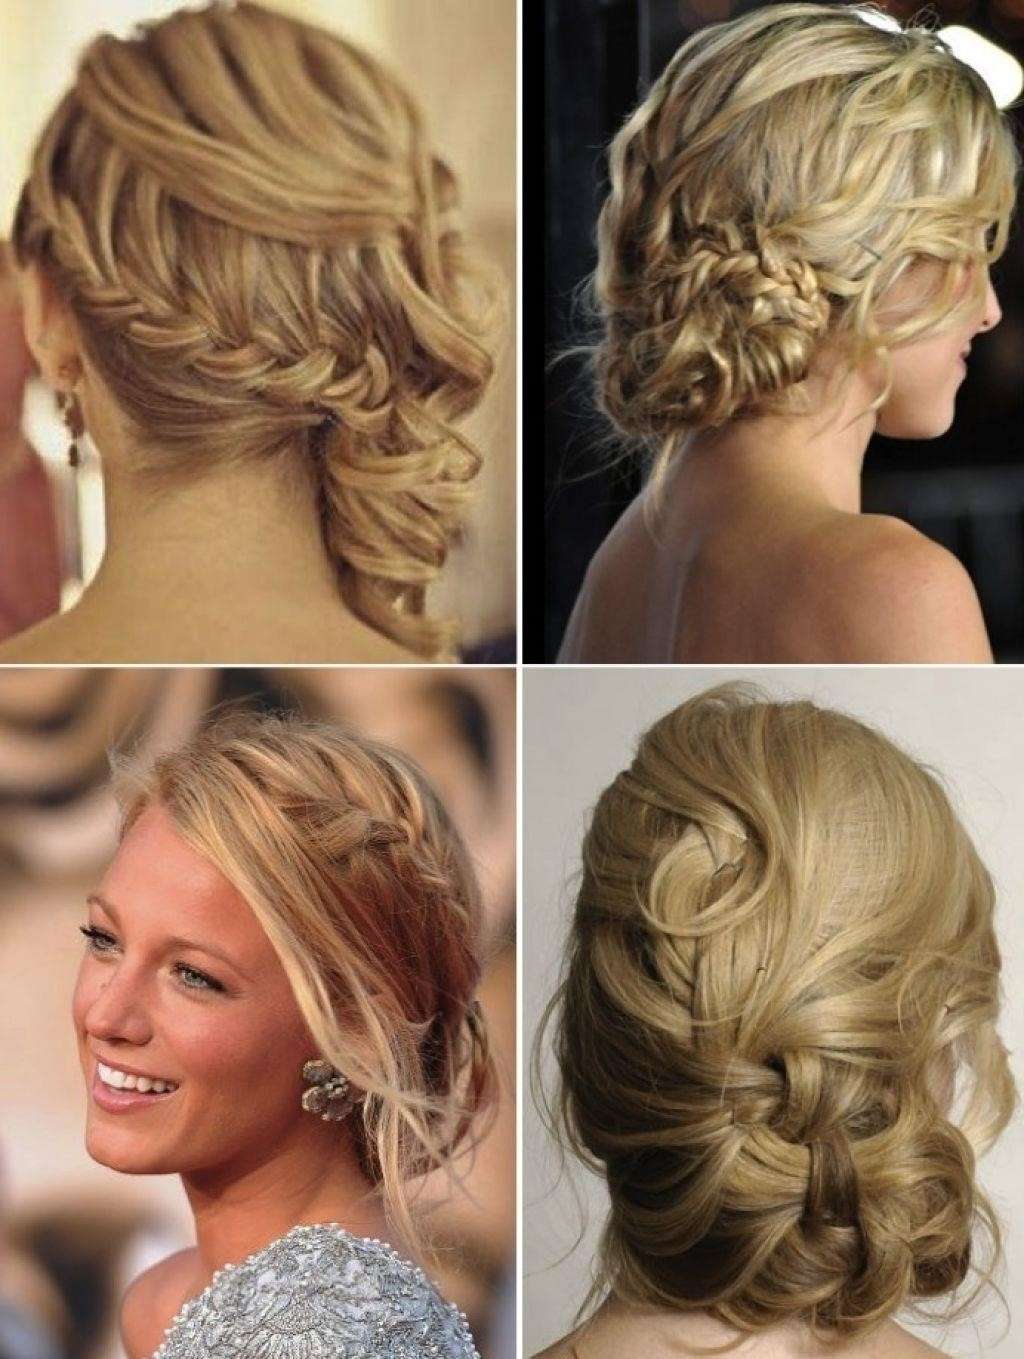 Side Updo Hairstyles For Long Hair Side Updo Hairstyles For Long Pertaining To Side Updo Hairstyles (View 9 of 15)